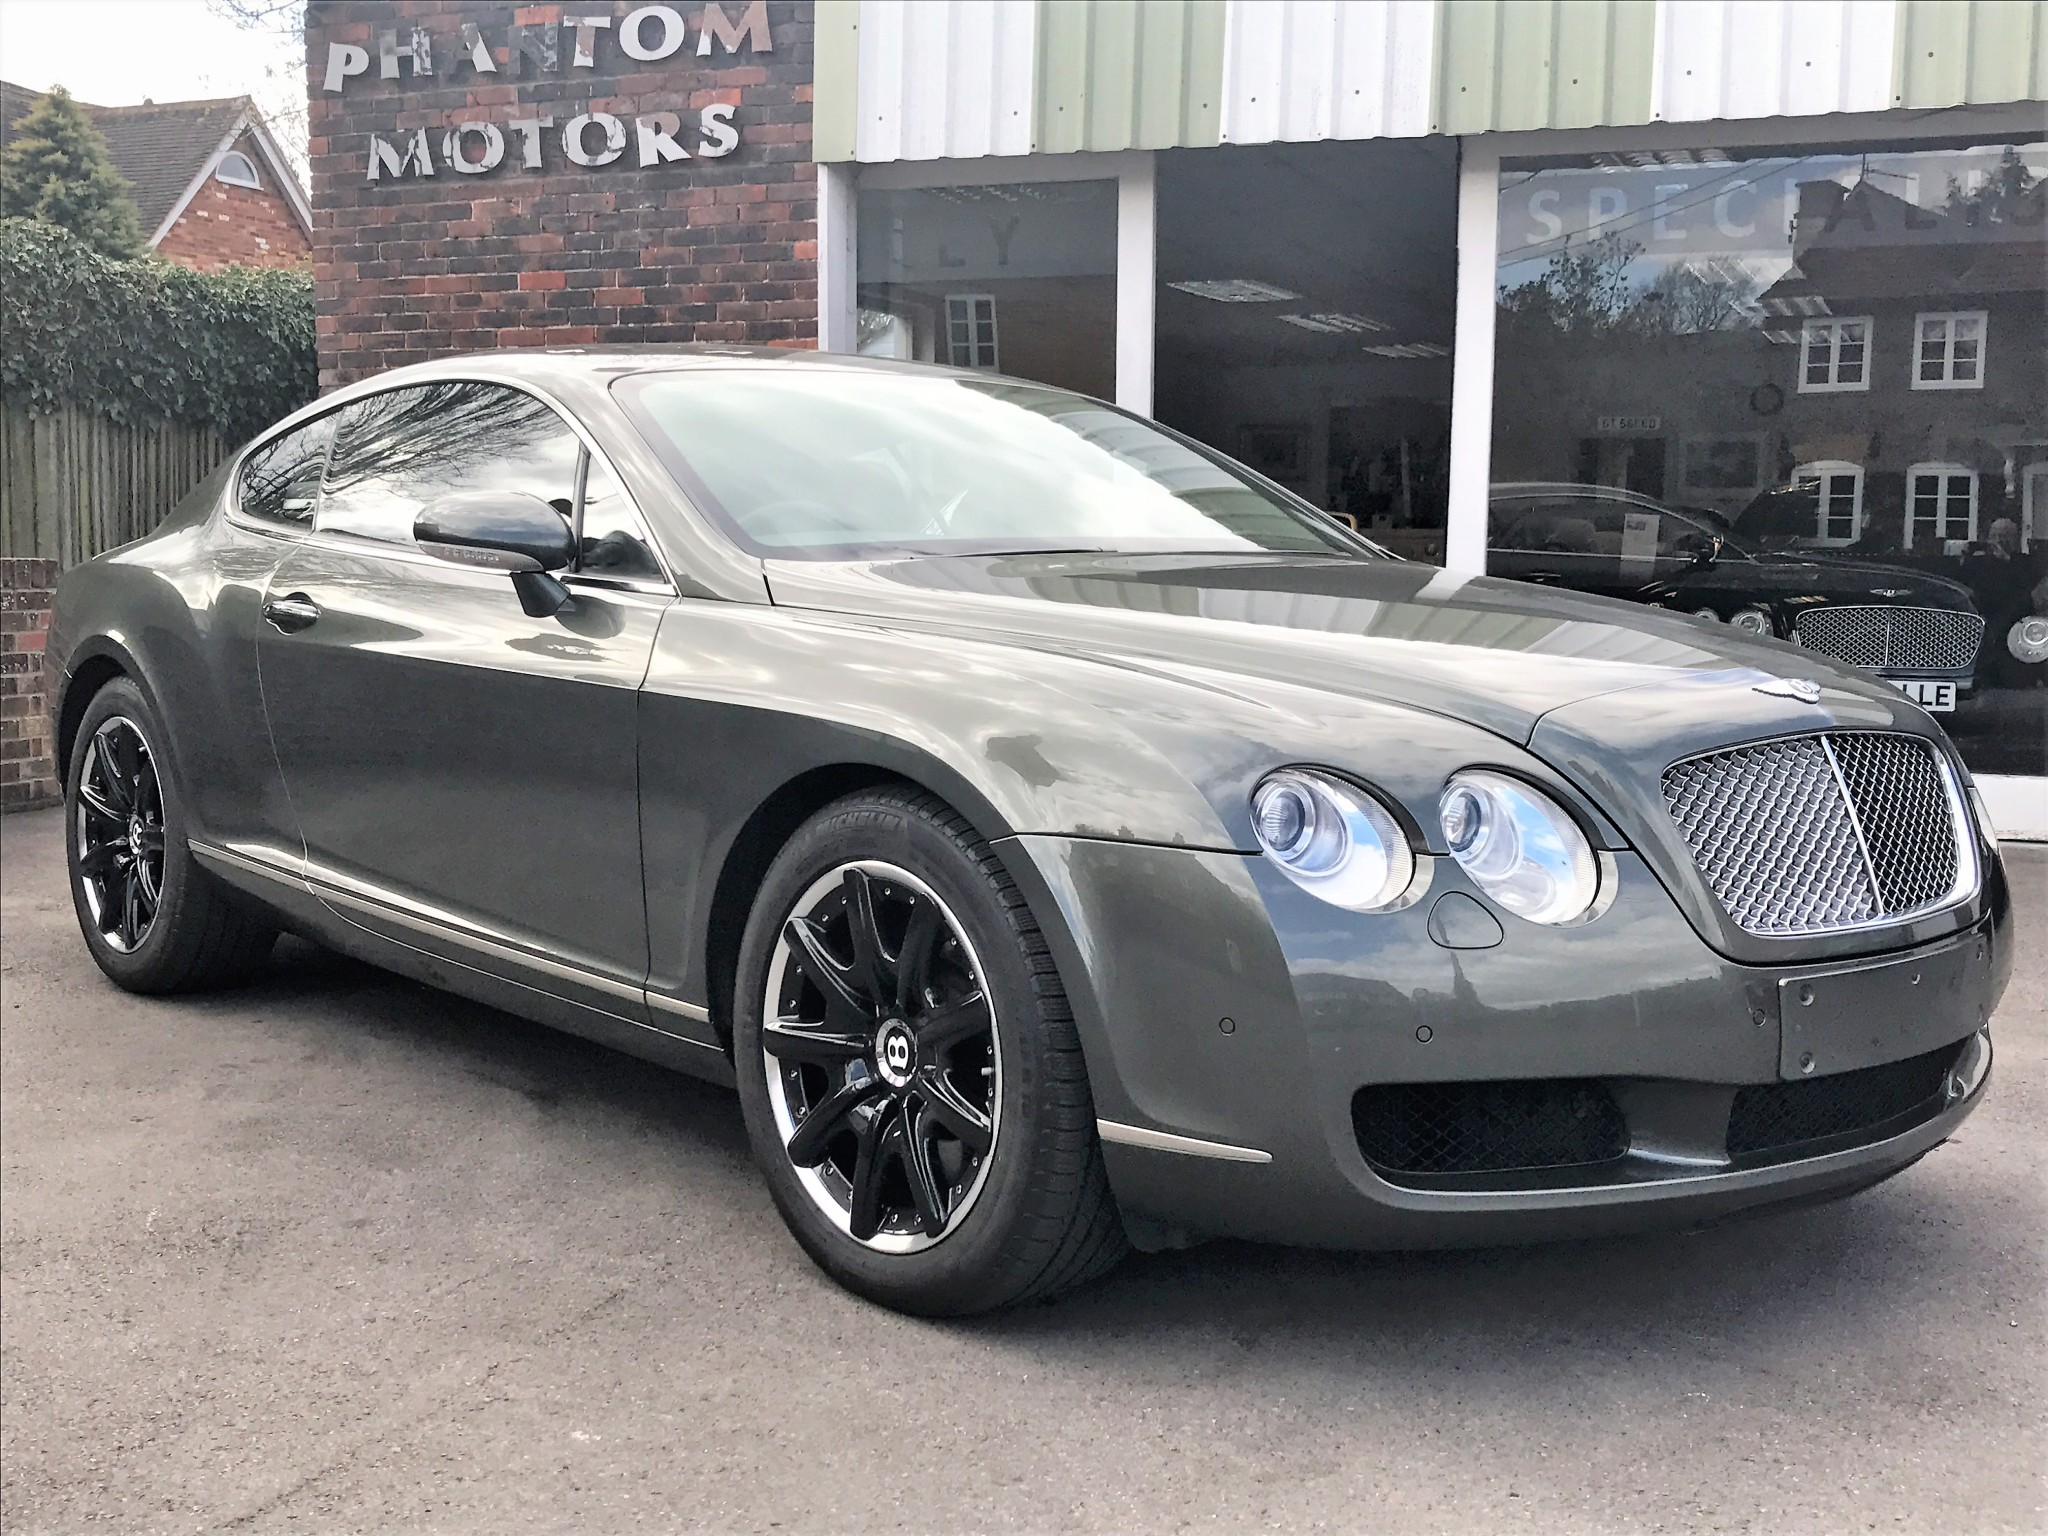 s gt price true com nocrop continental speed width automatic awd shift pfi bentley url resize listing paddle luxify